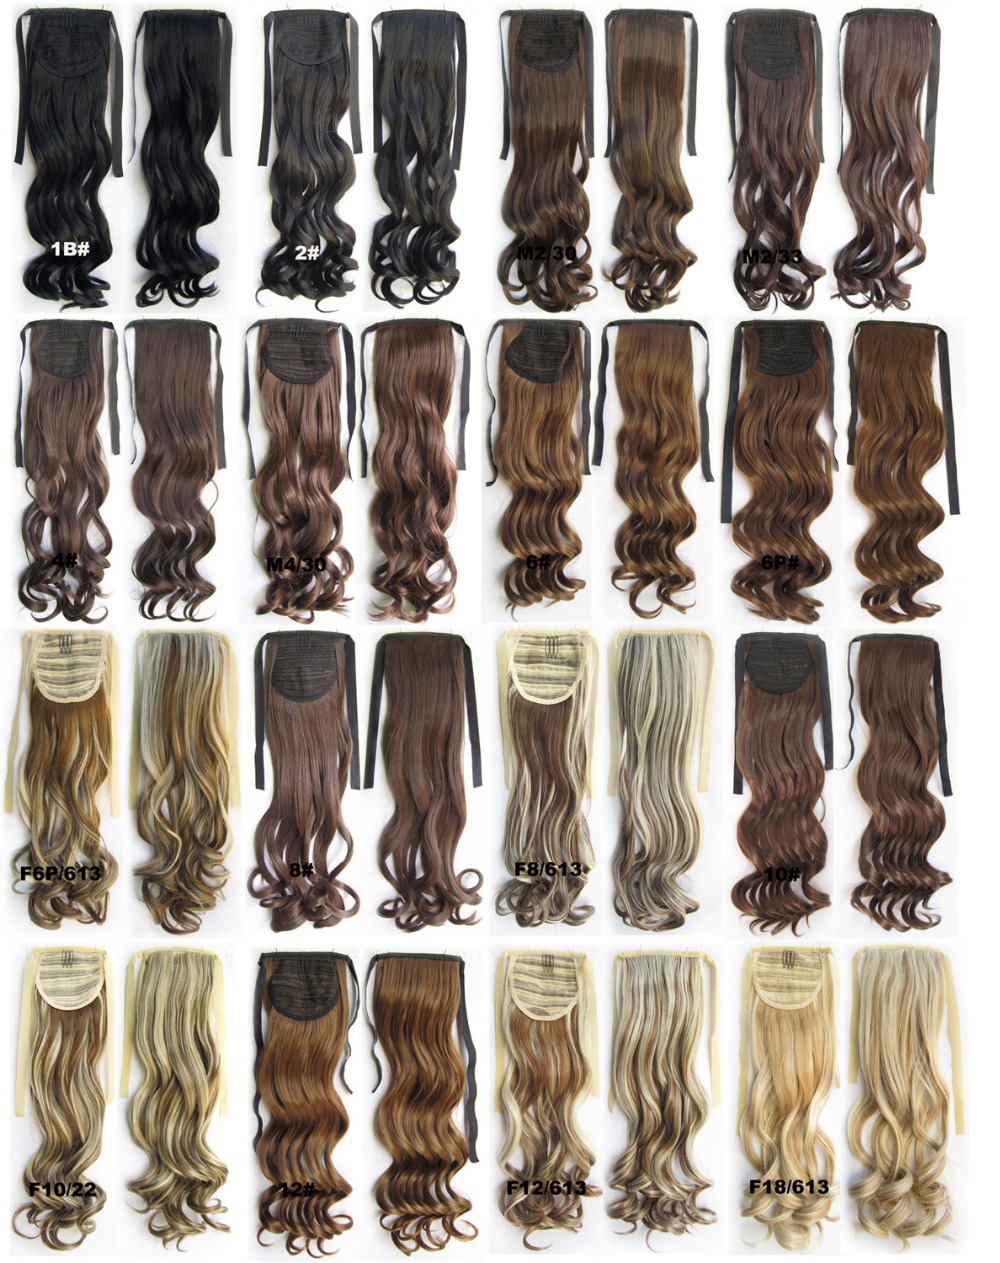 Heat Resistance Synthetic Hairpieces Ribbon Ponytail Clip in on wavy Hair Extension 55cm,80g,28 colors available,10pcs/lot(China (Mainland))